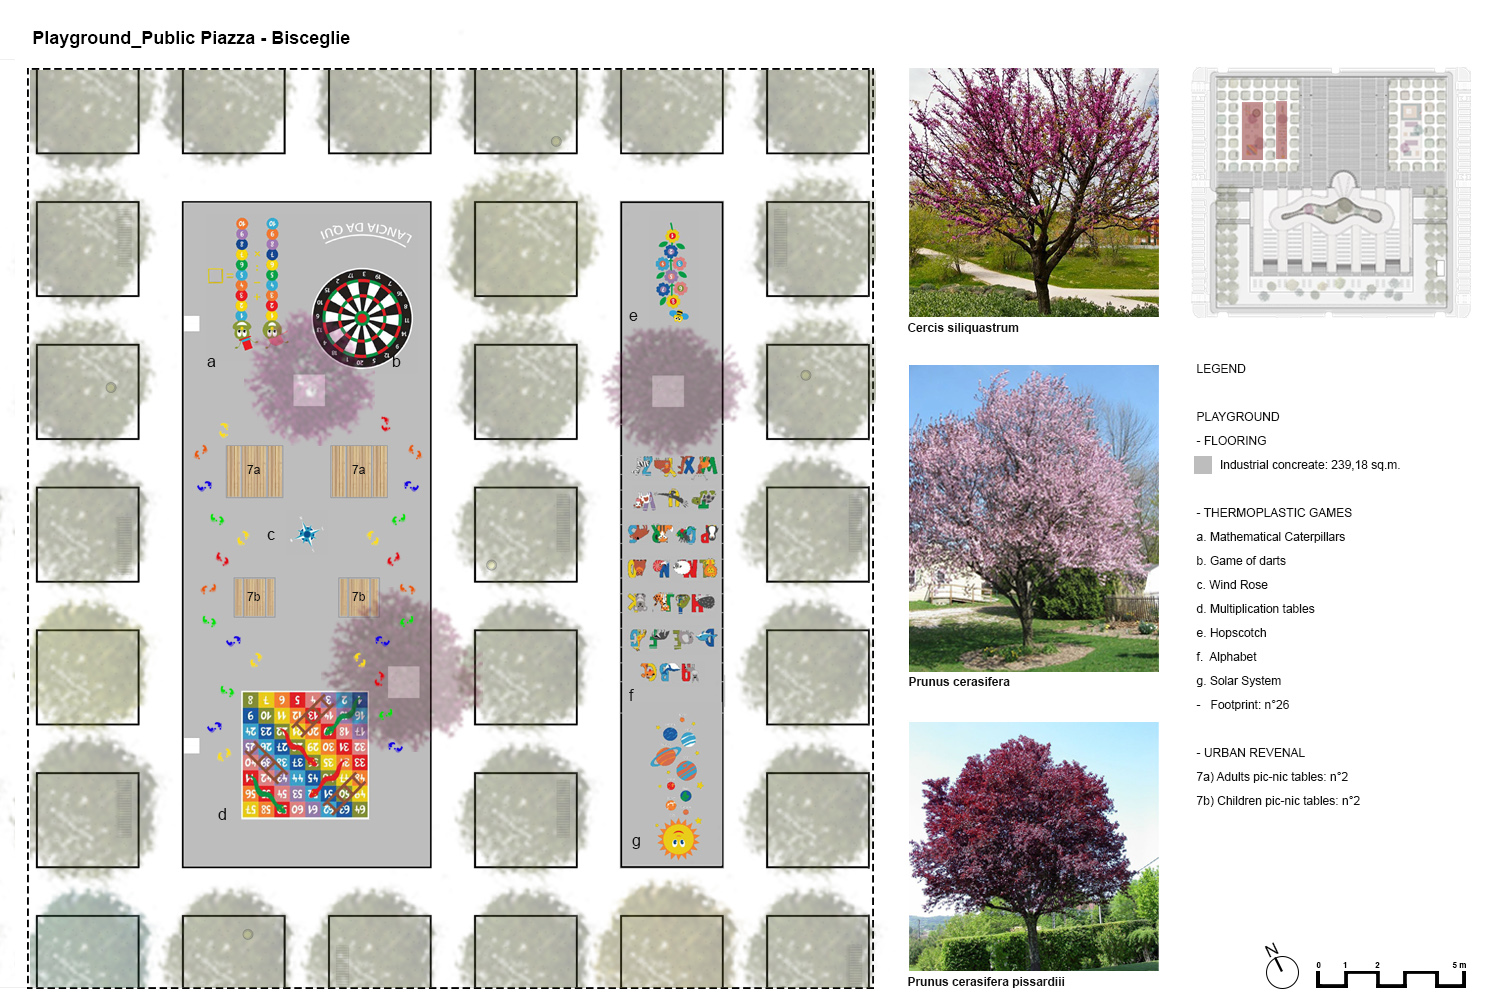 Plan and details of the playground PERALTA - design & consulting}